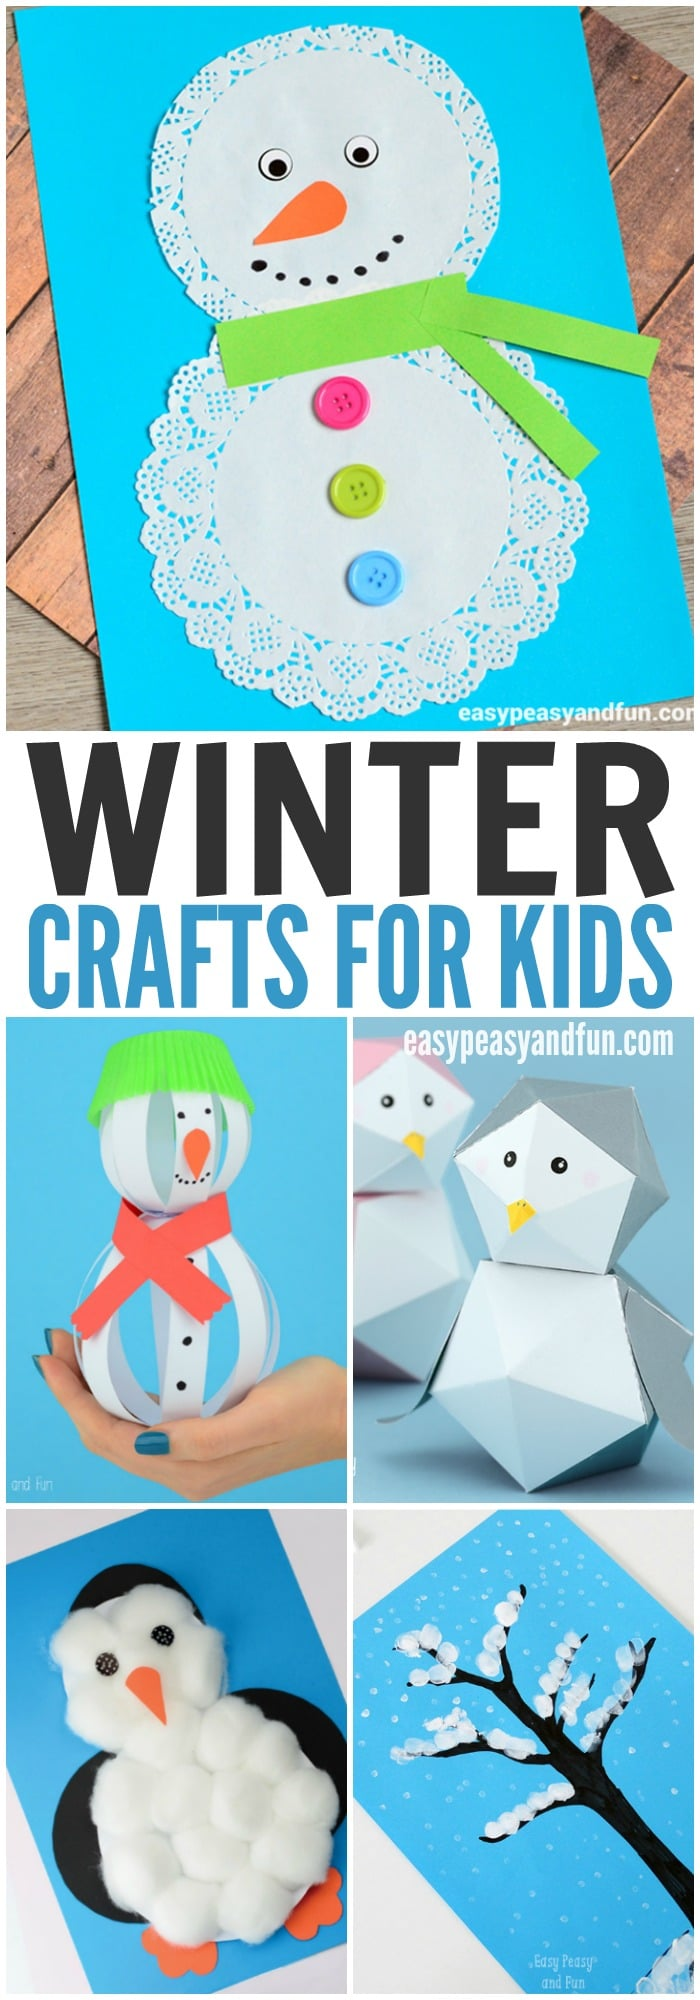 winter crafts for kids to make easy peasy and fun